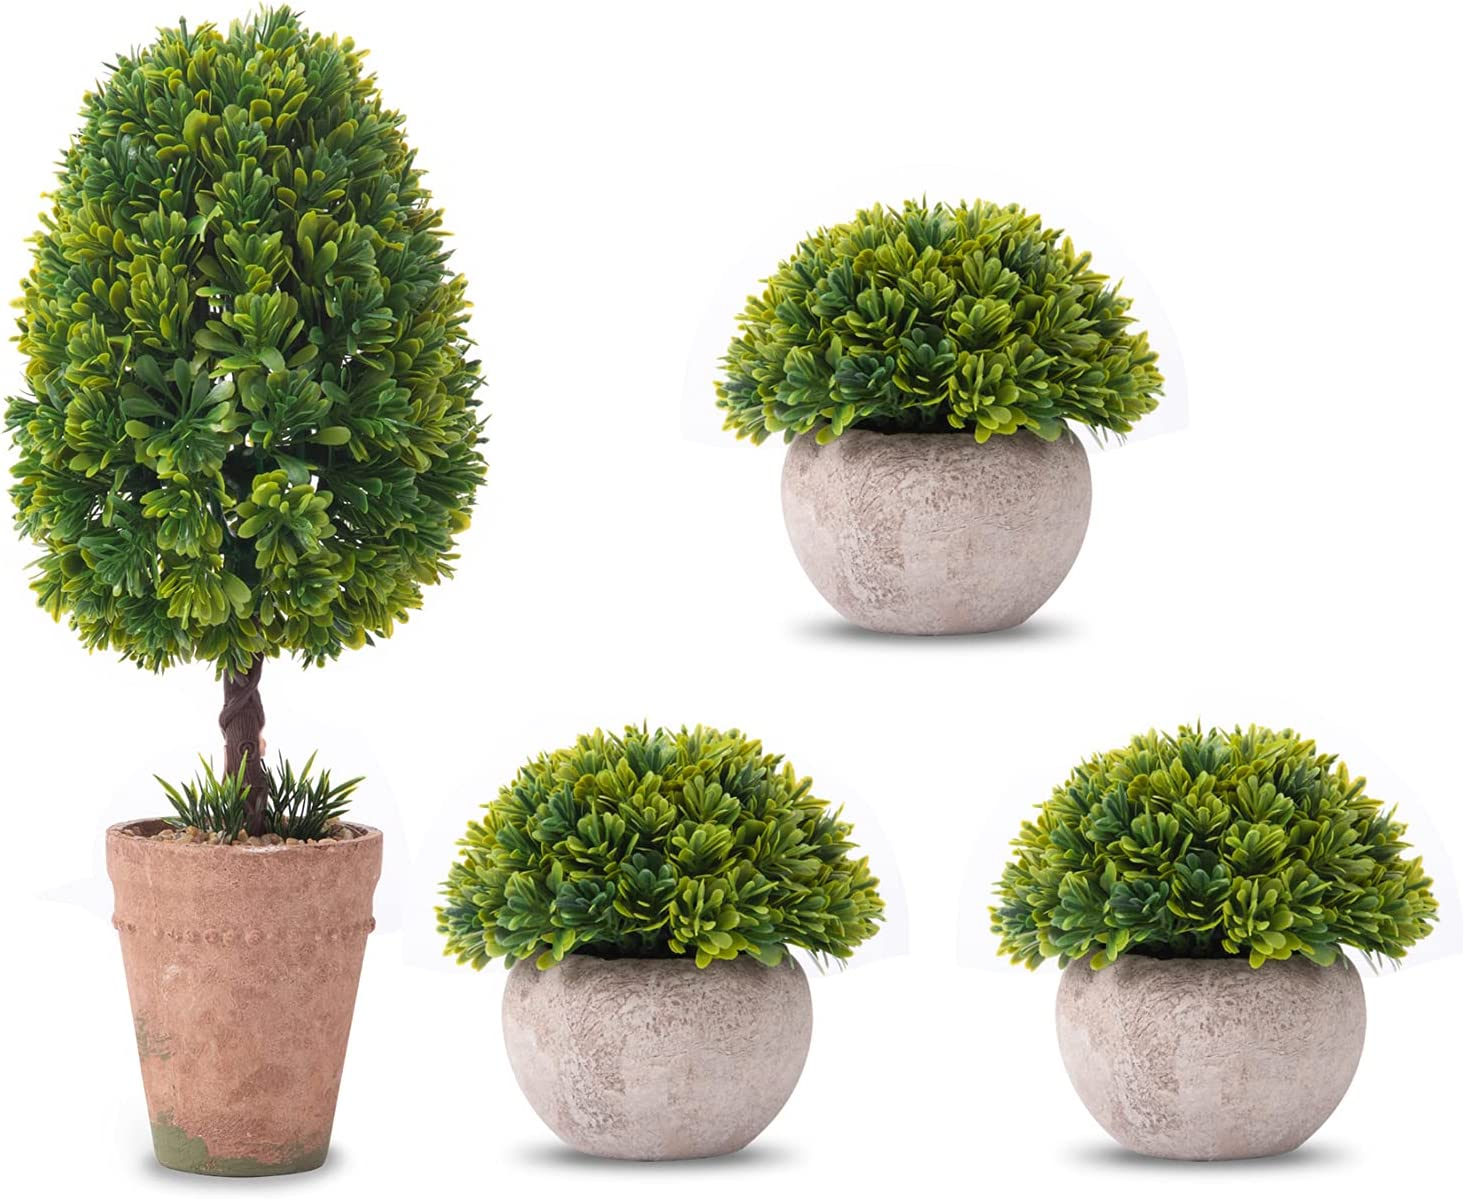 Mizii Spring new work Small 2021 autumn and winter new Artificial Boxwood Greenery Fake Potted Topiary Tree